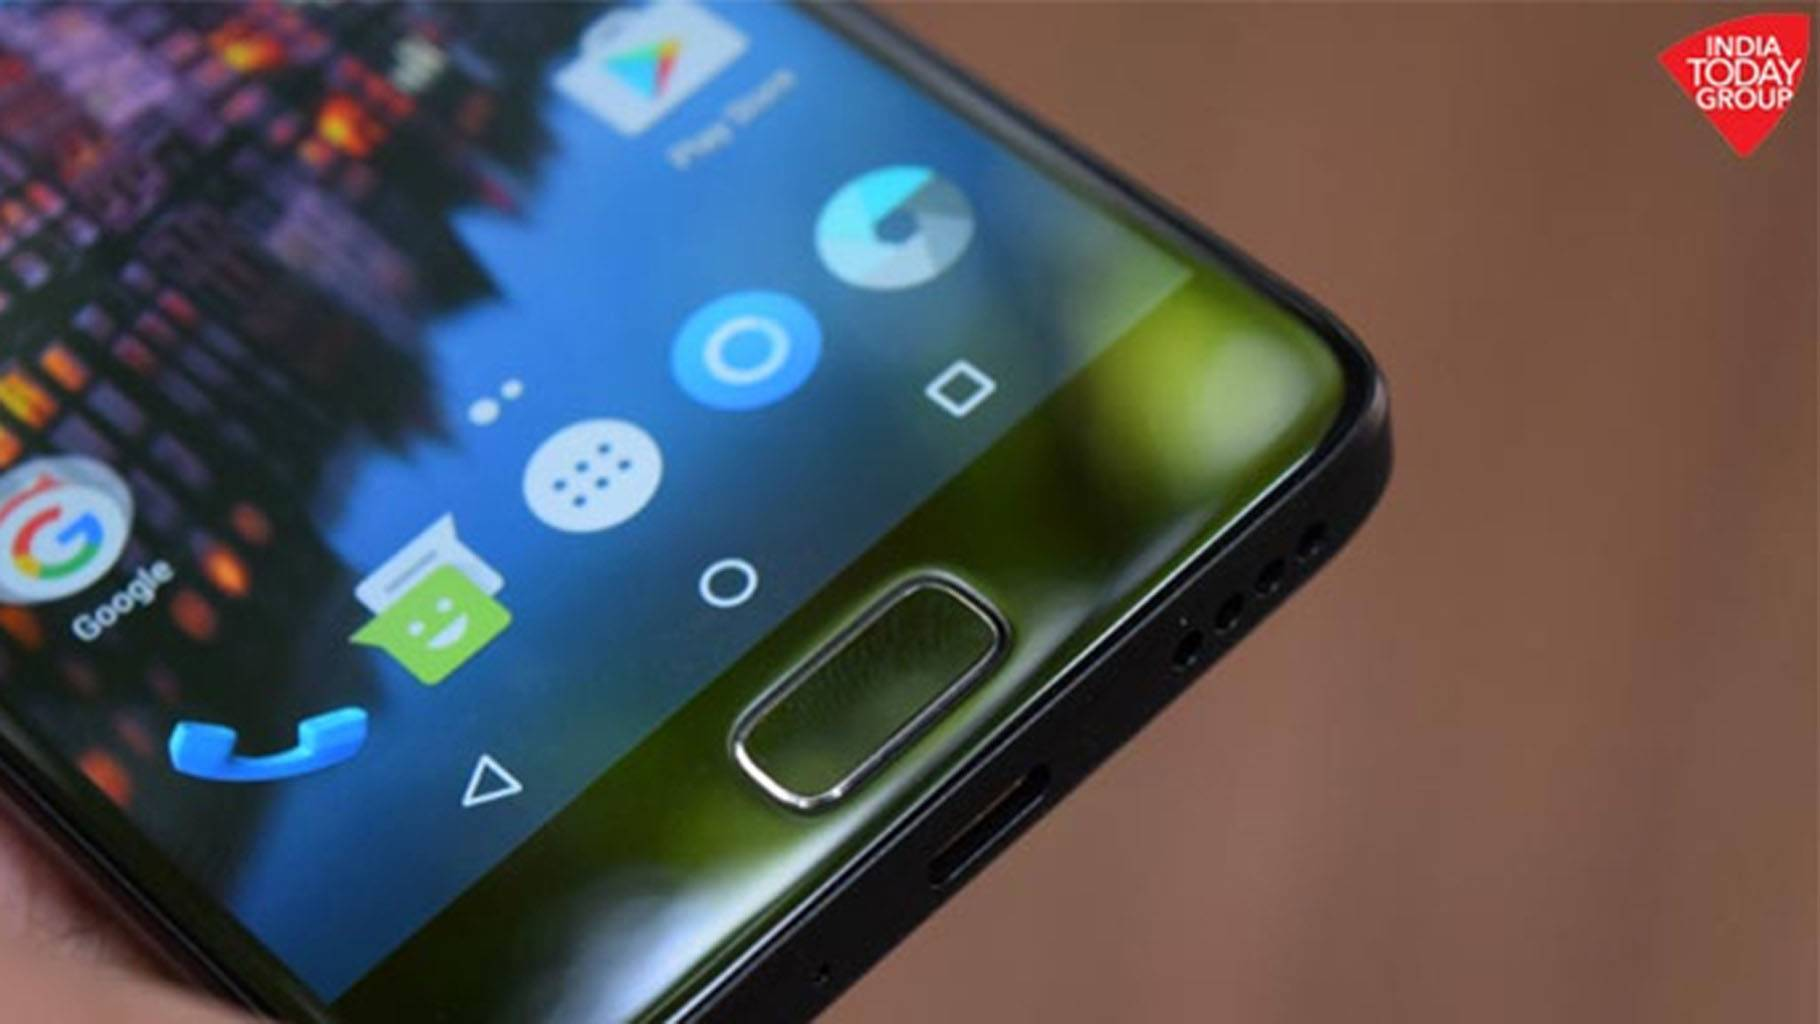 Best smartphones you can buy for less than 20k right now